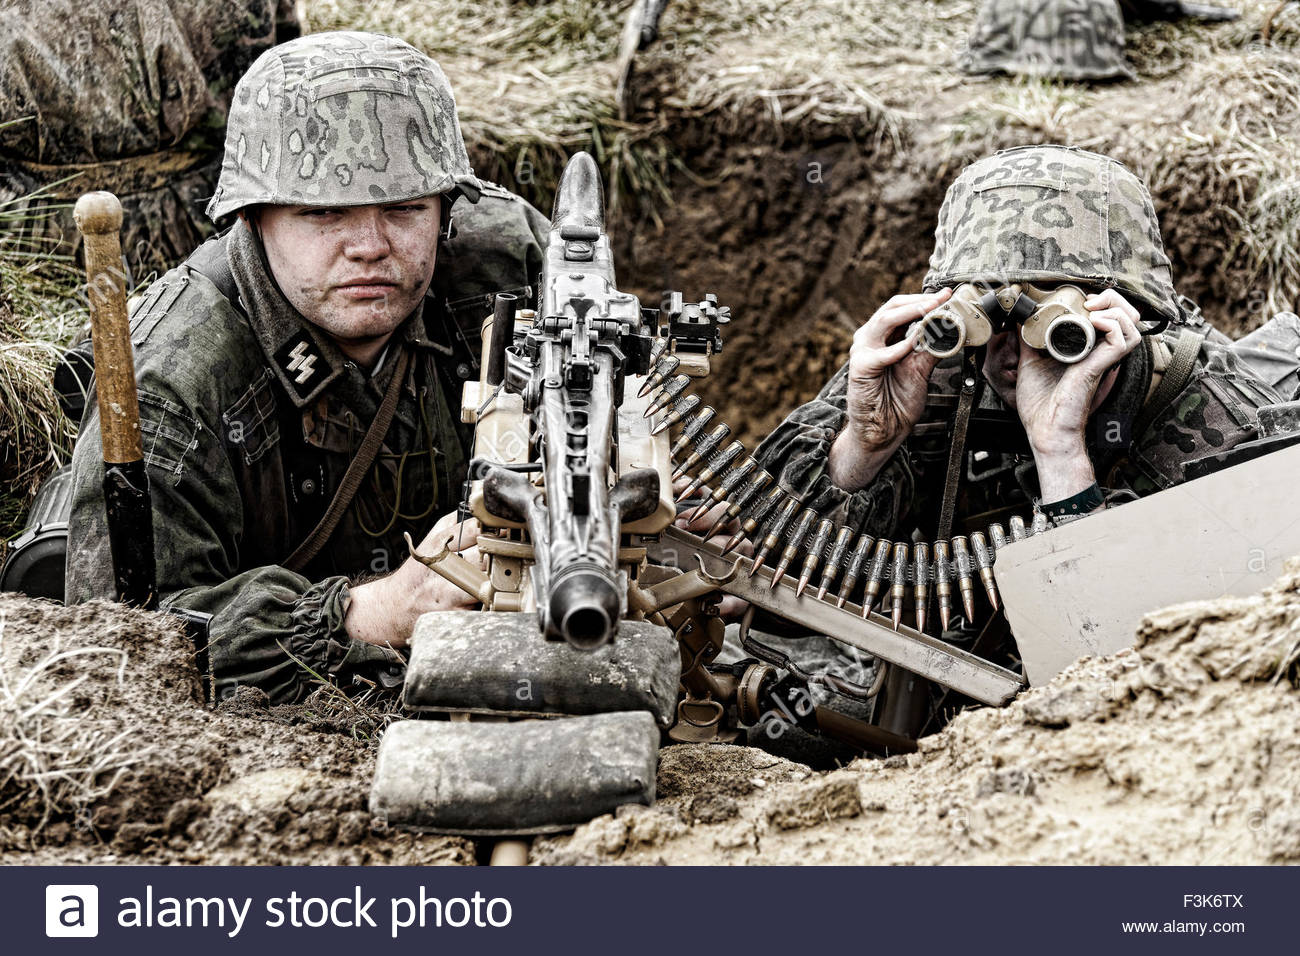 A re-enactor dressed as a German WW2 solider with a MG42 machinegun